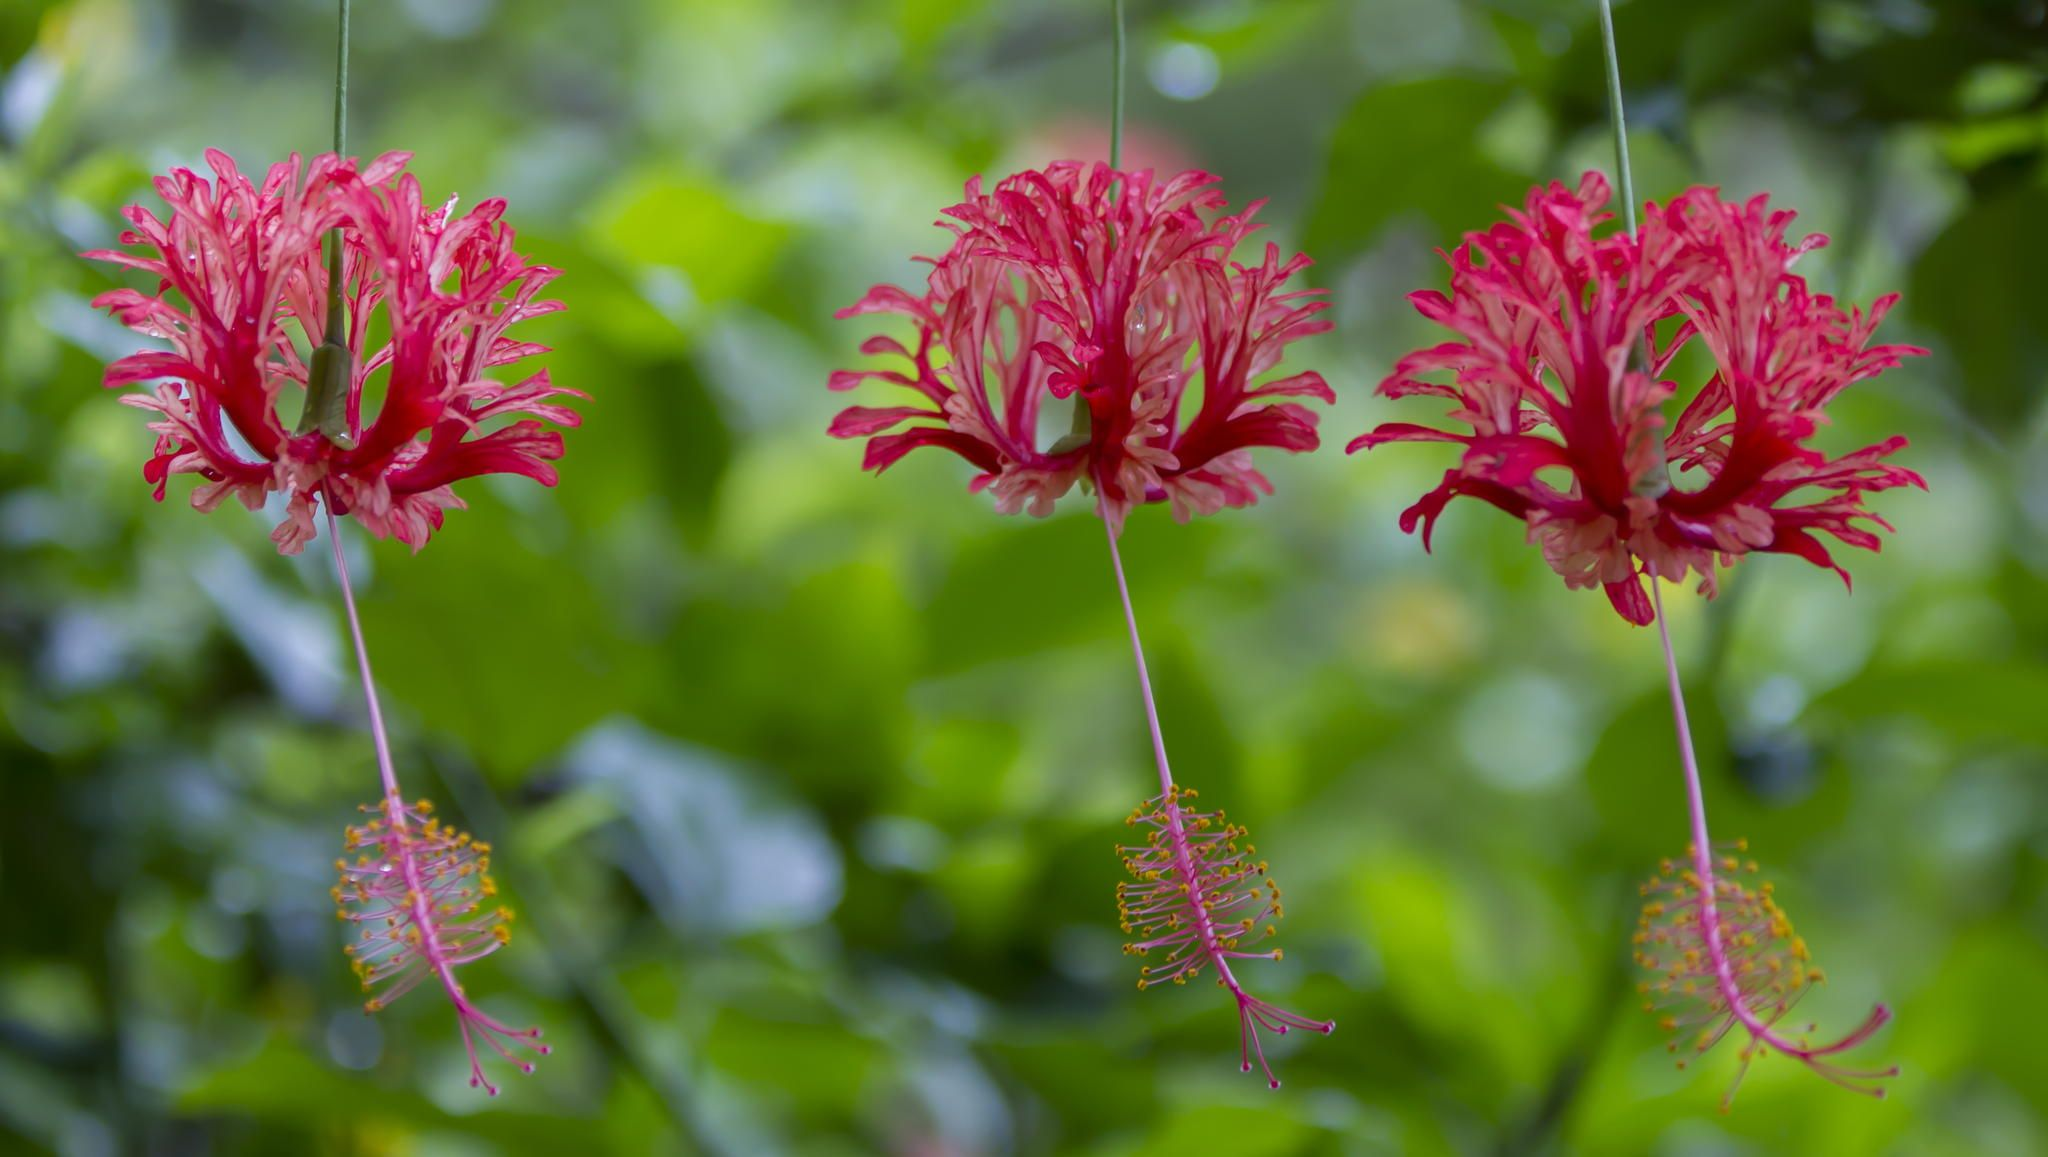 Coral hibiscus, also known as Japanese lantern or spider